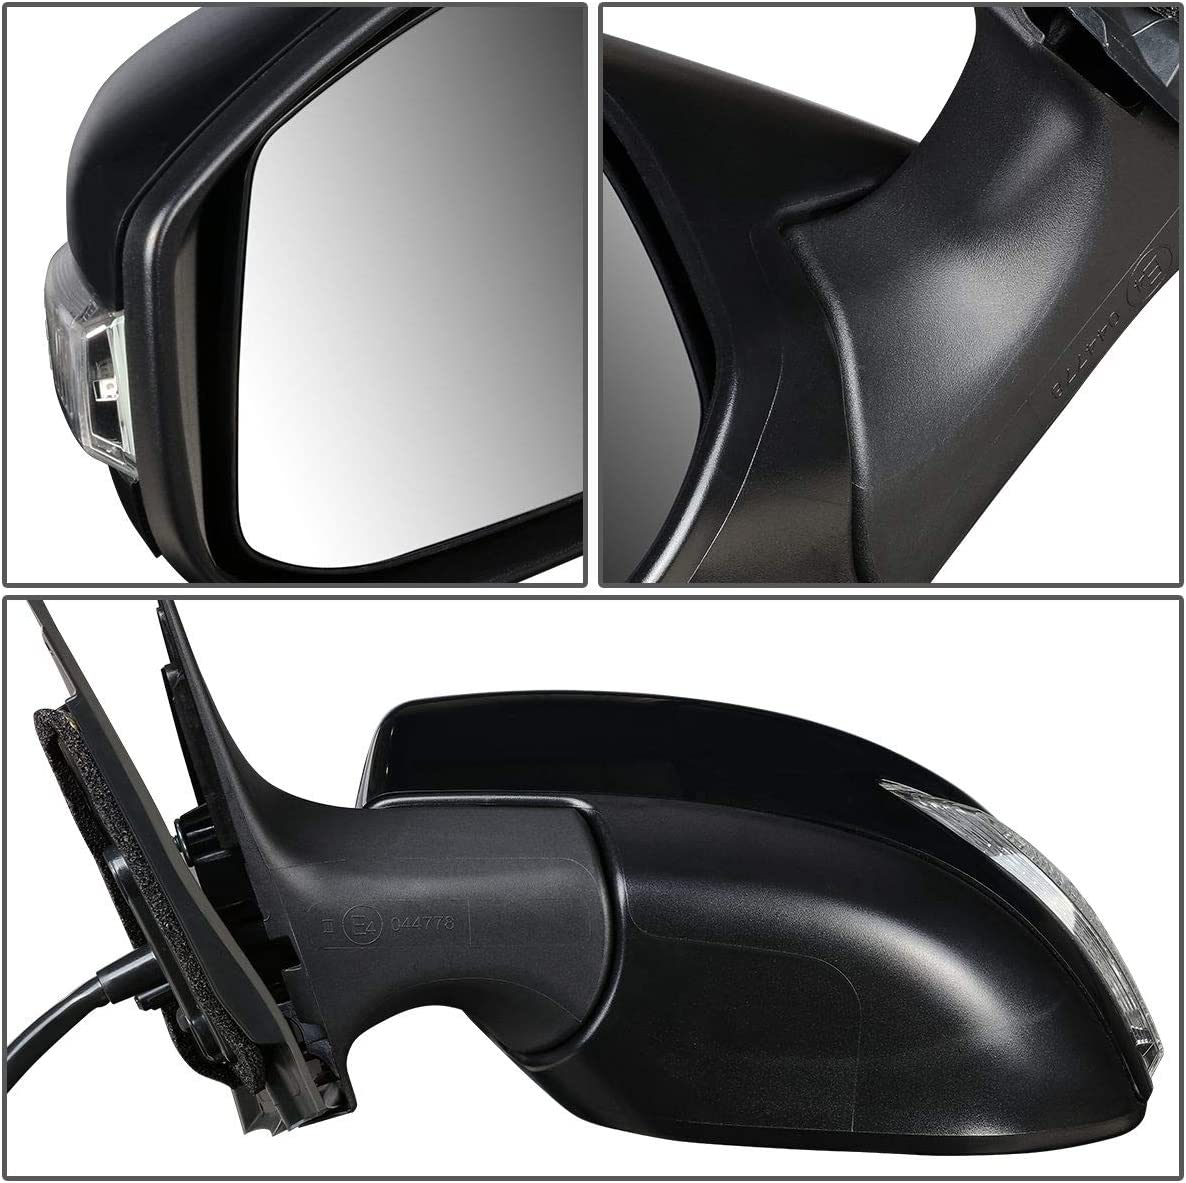 New Left Mirror for Nissan Altima NI1320224 2013 to 2013